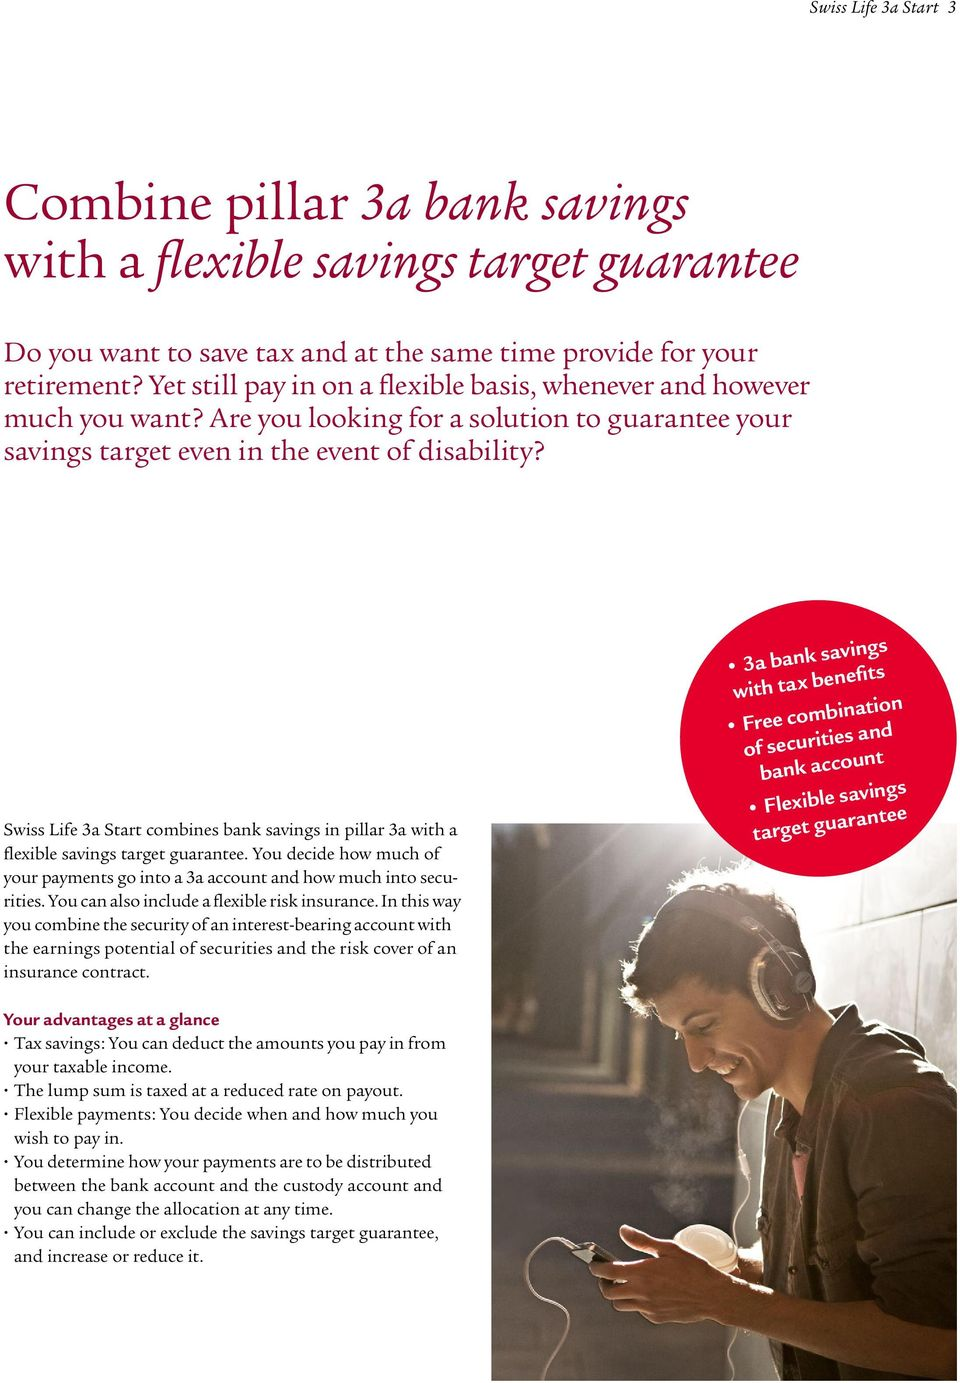 Swiss Life 3a Start combines bank savings in pillar 3a with a flexible savings target guarantee. You decide how much of your payments go into a 3a account and how much into securities.